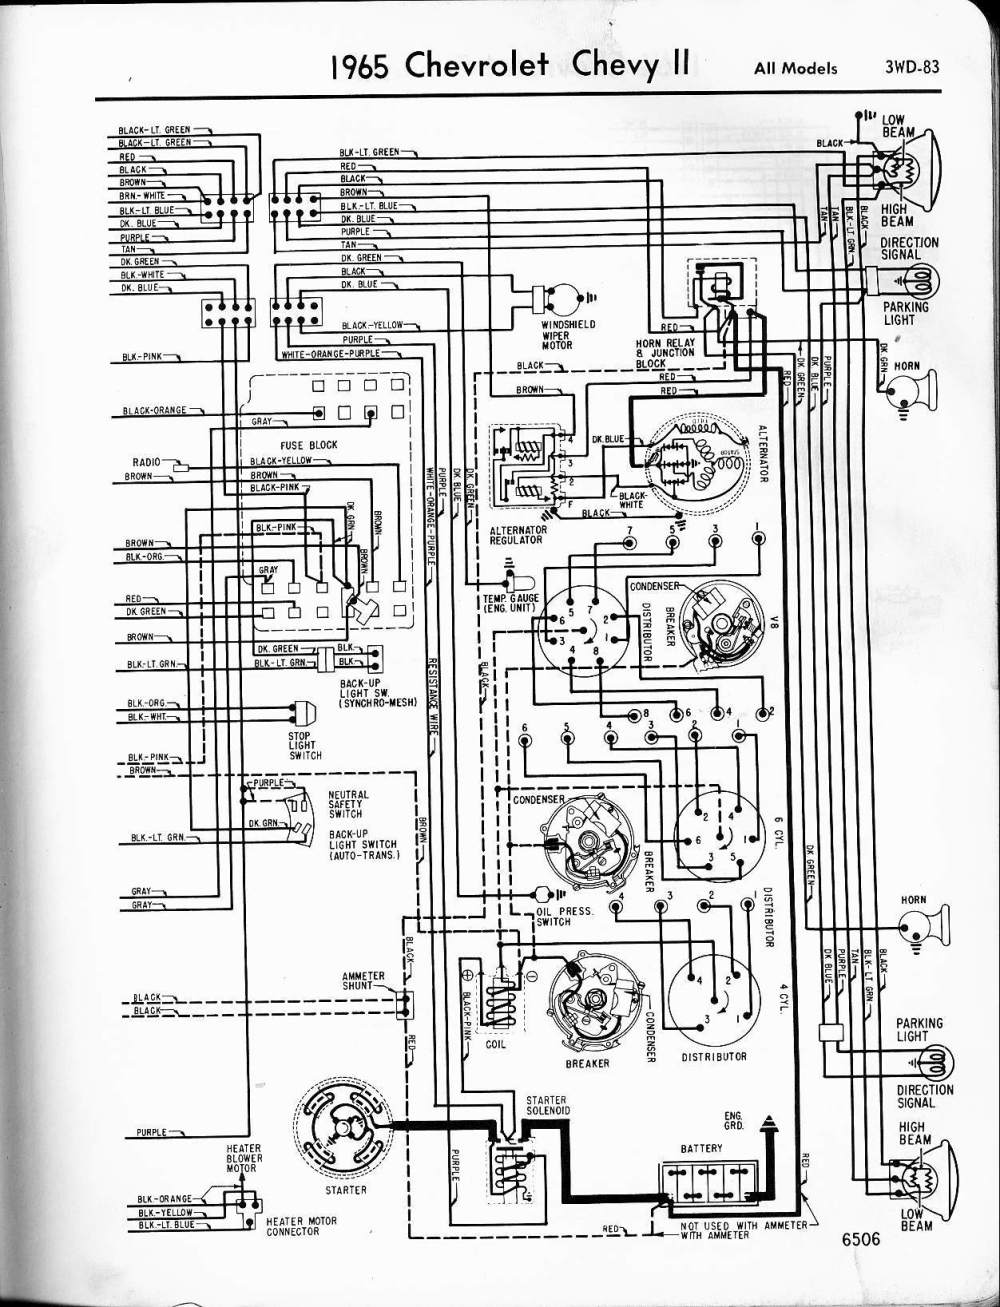 1964 Chevy Impala Ss Wiring Diagram